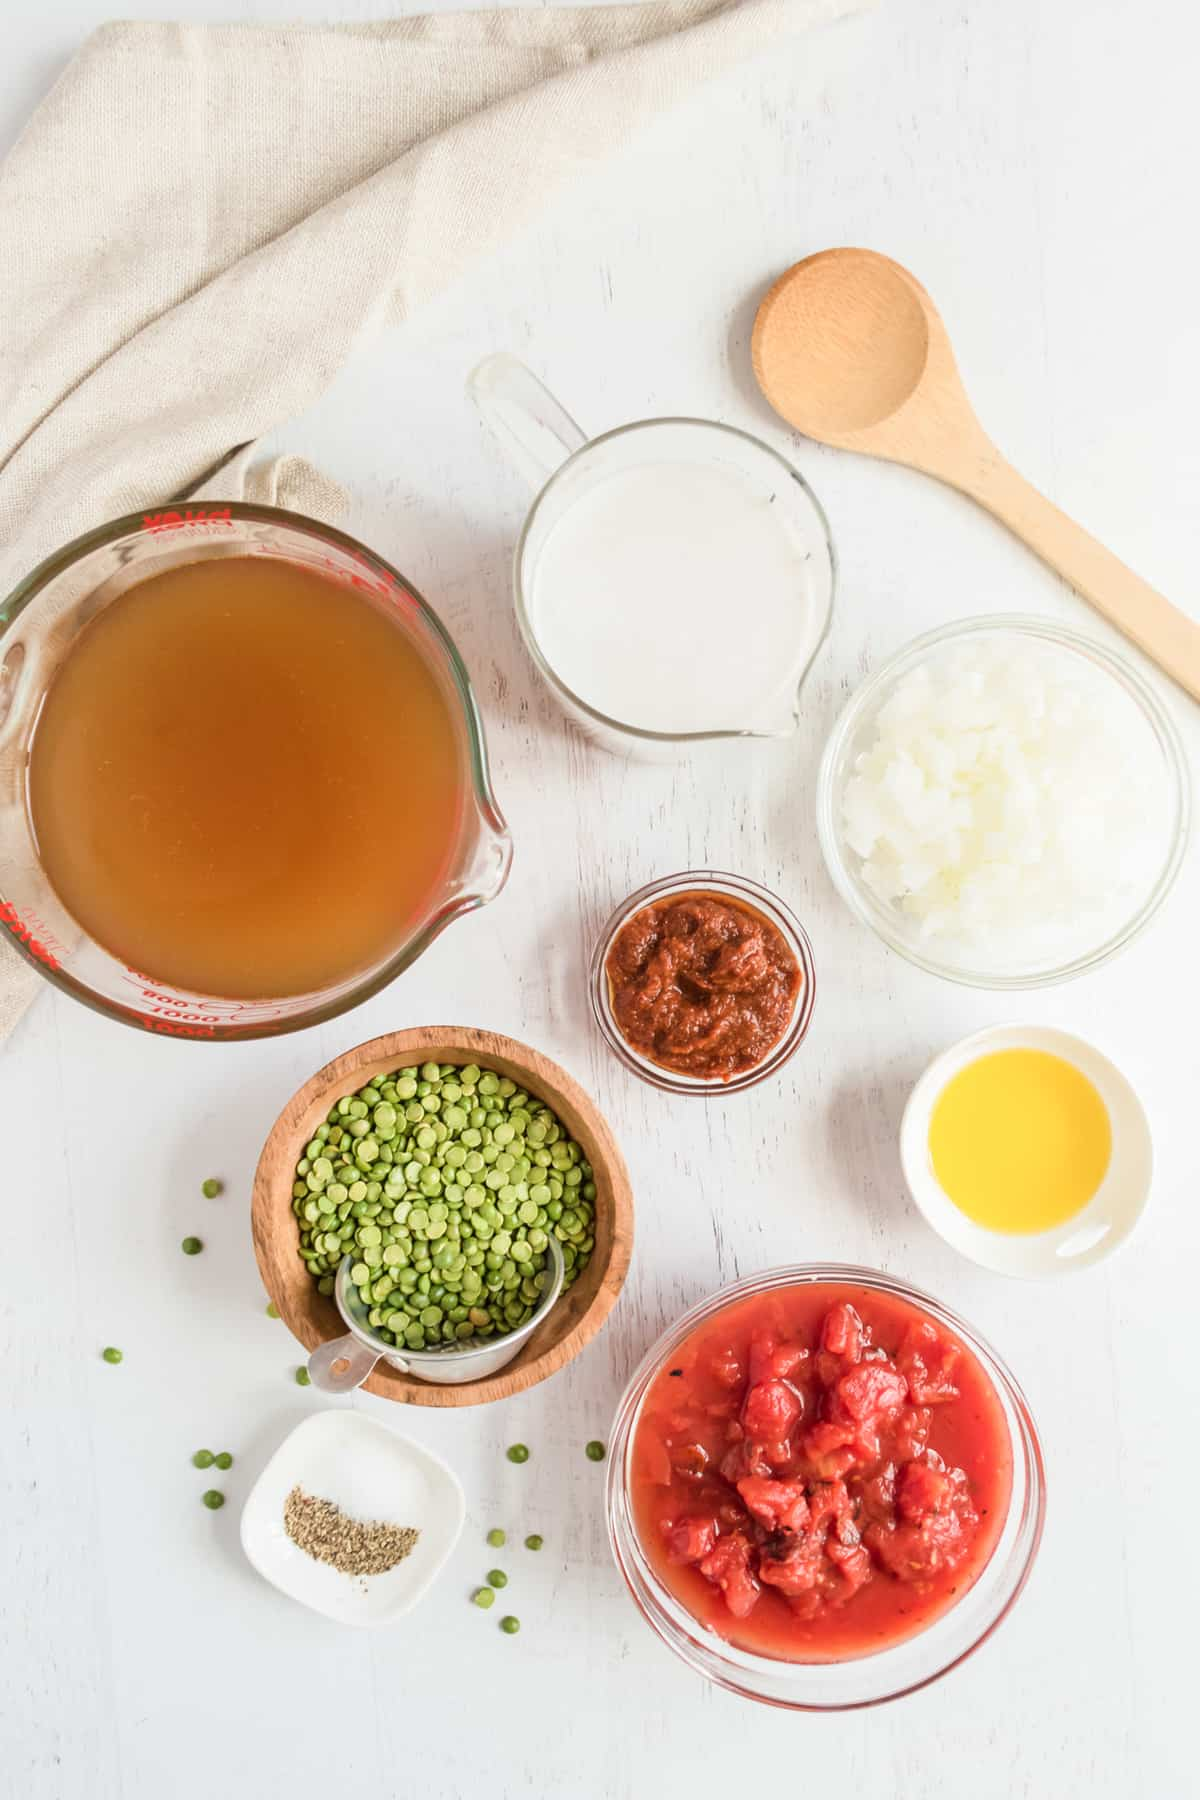 Ingredients to make curry sit together - vegetable broth, coconut milk, tomatoes, red curry paste, split peas, butter, and onion.